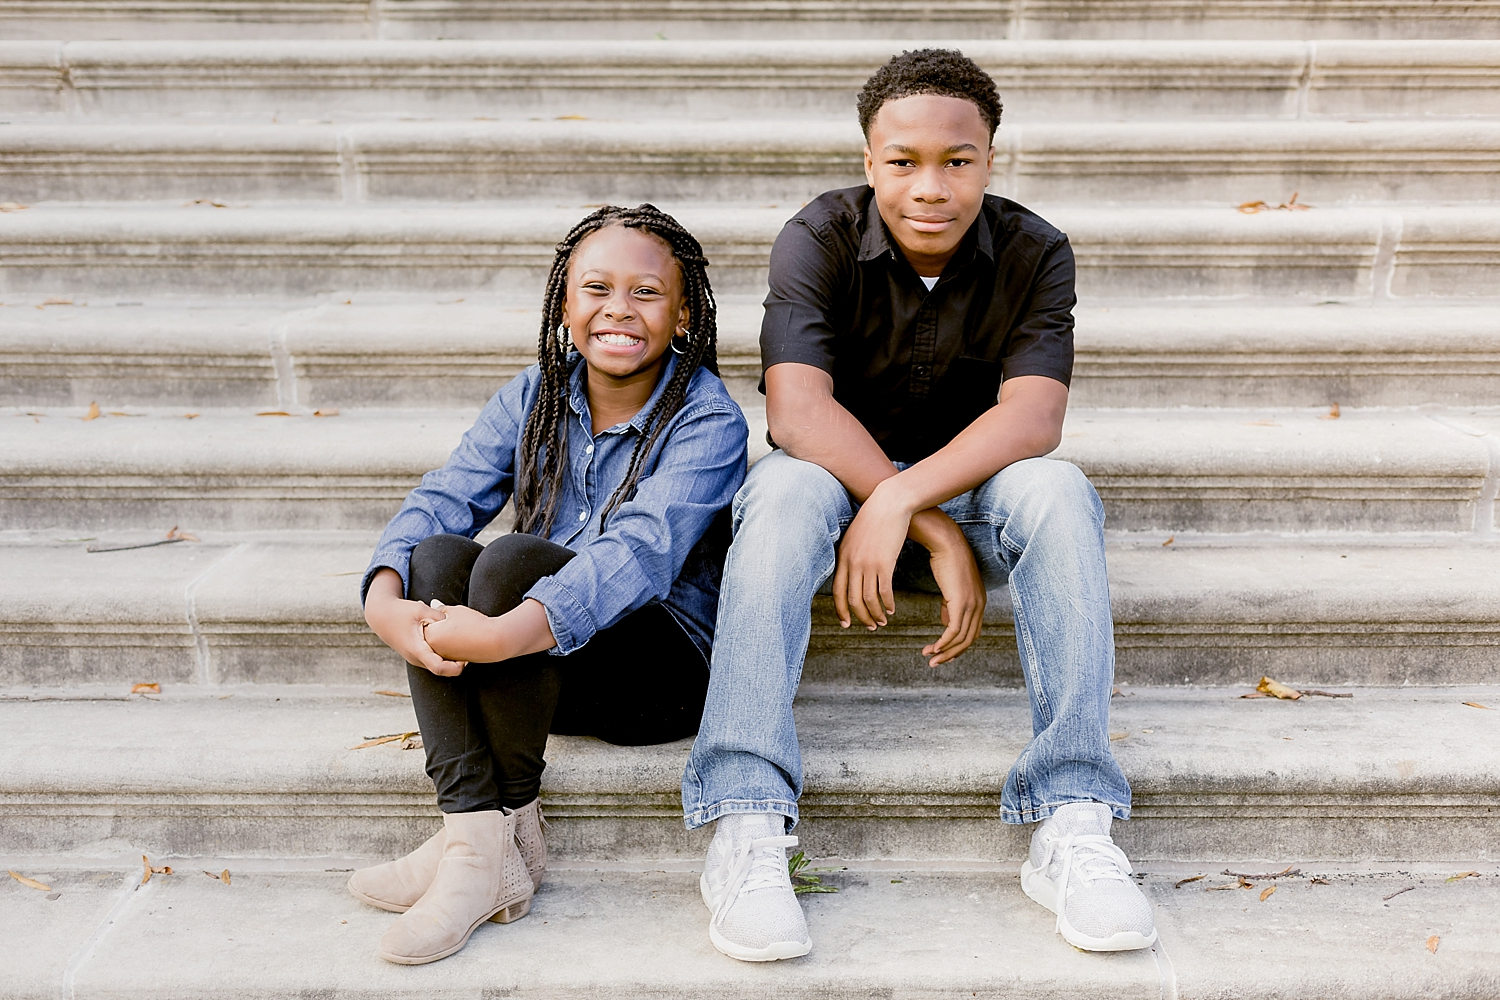 brother and sister sitting on steps in photography pose